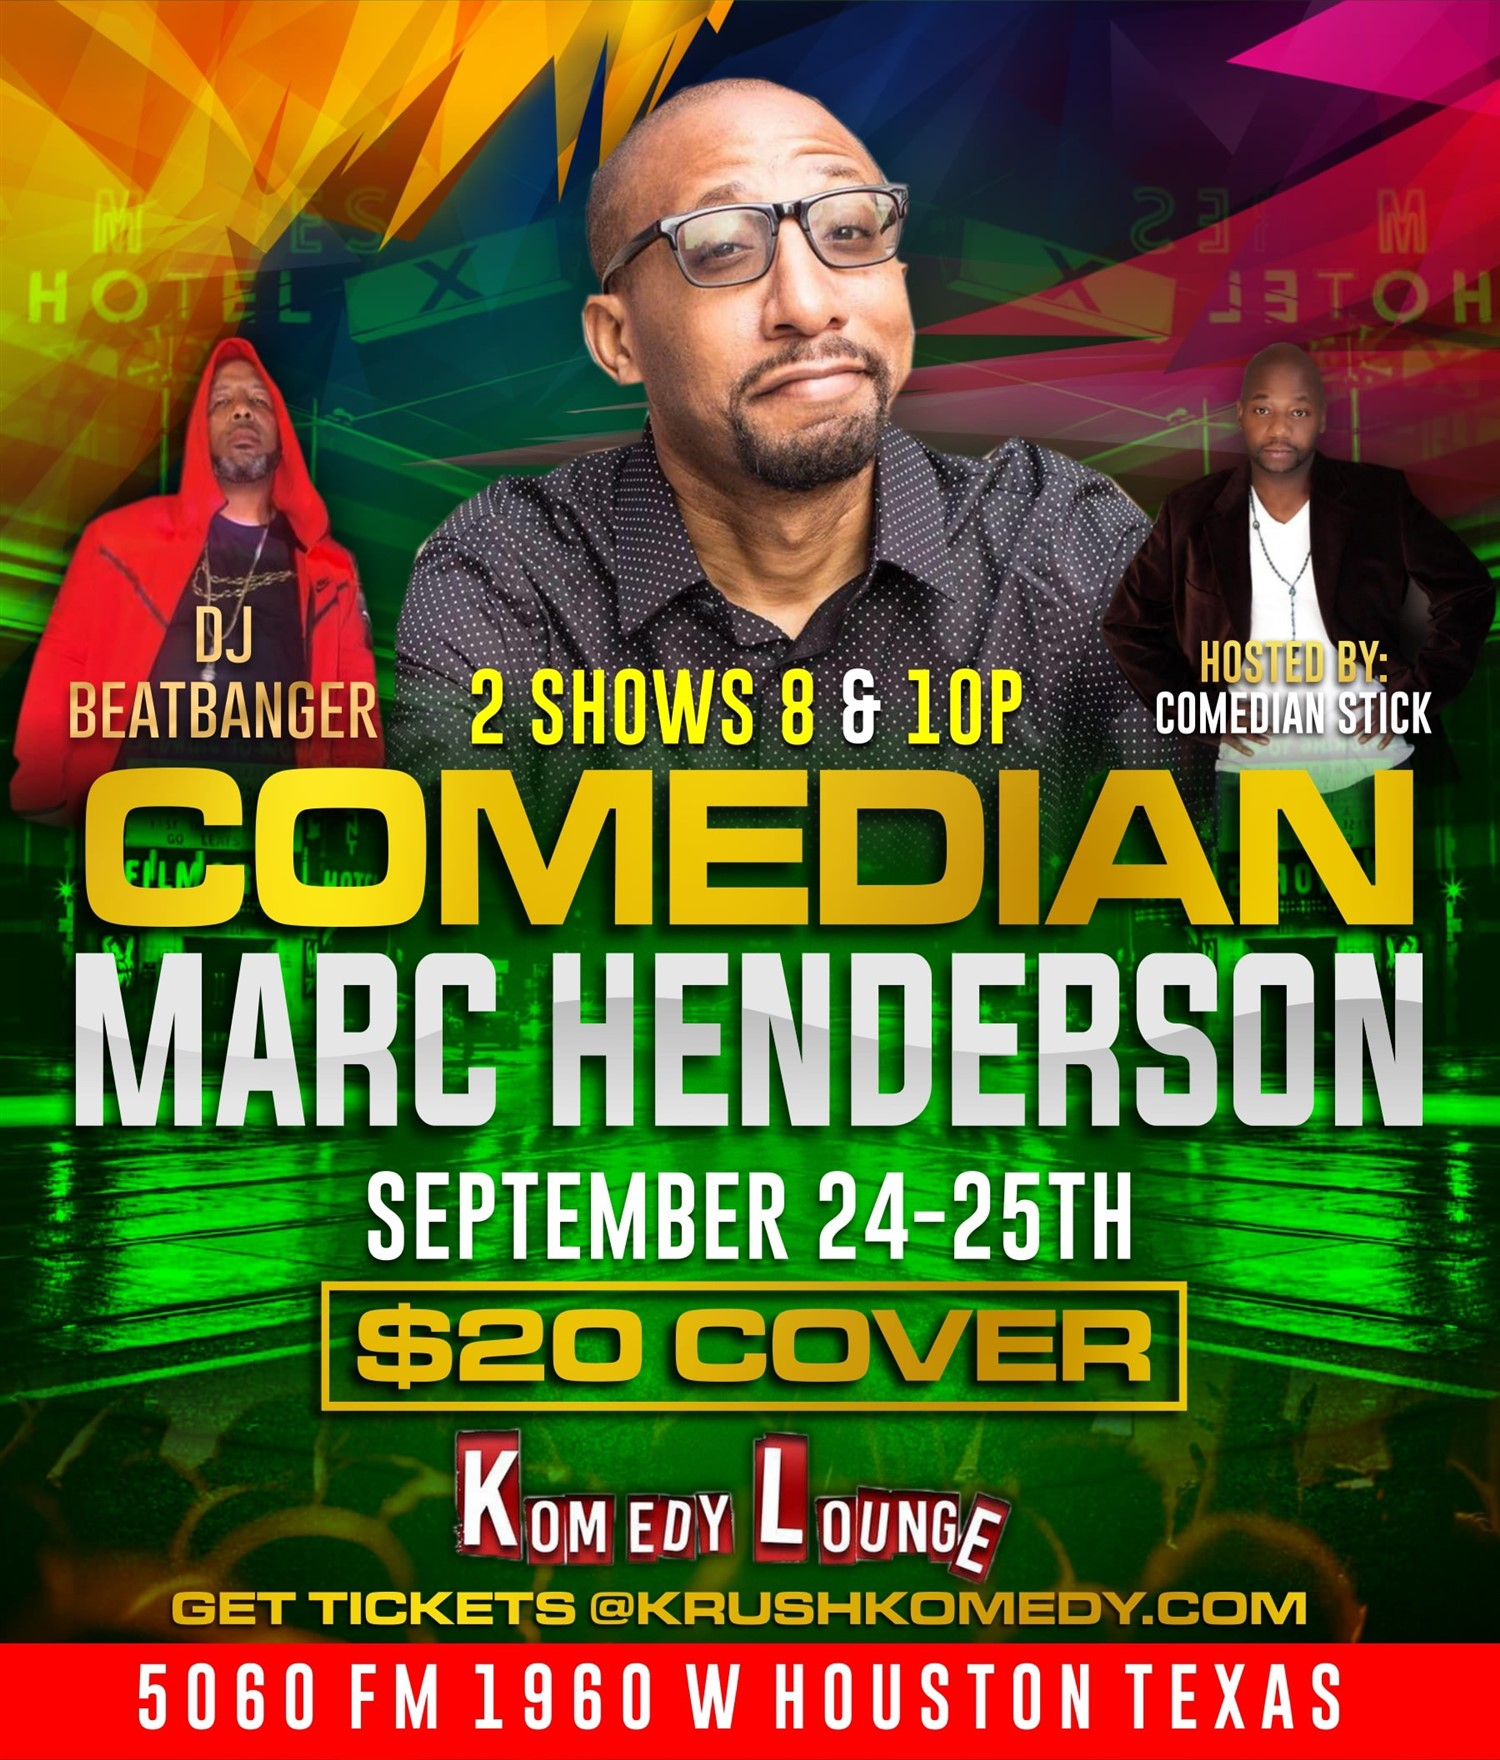 Comedian Marc Henderson 8pm  on Sep 24, 20:00@Komedy Lounge - Buy tickets and Get information on komedylounge.com